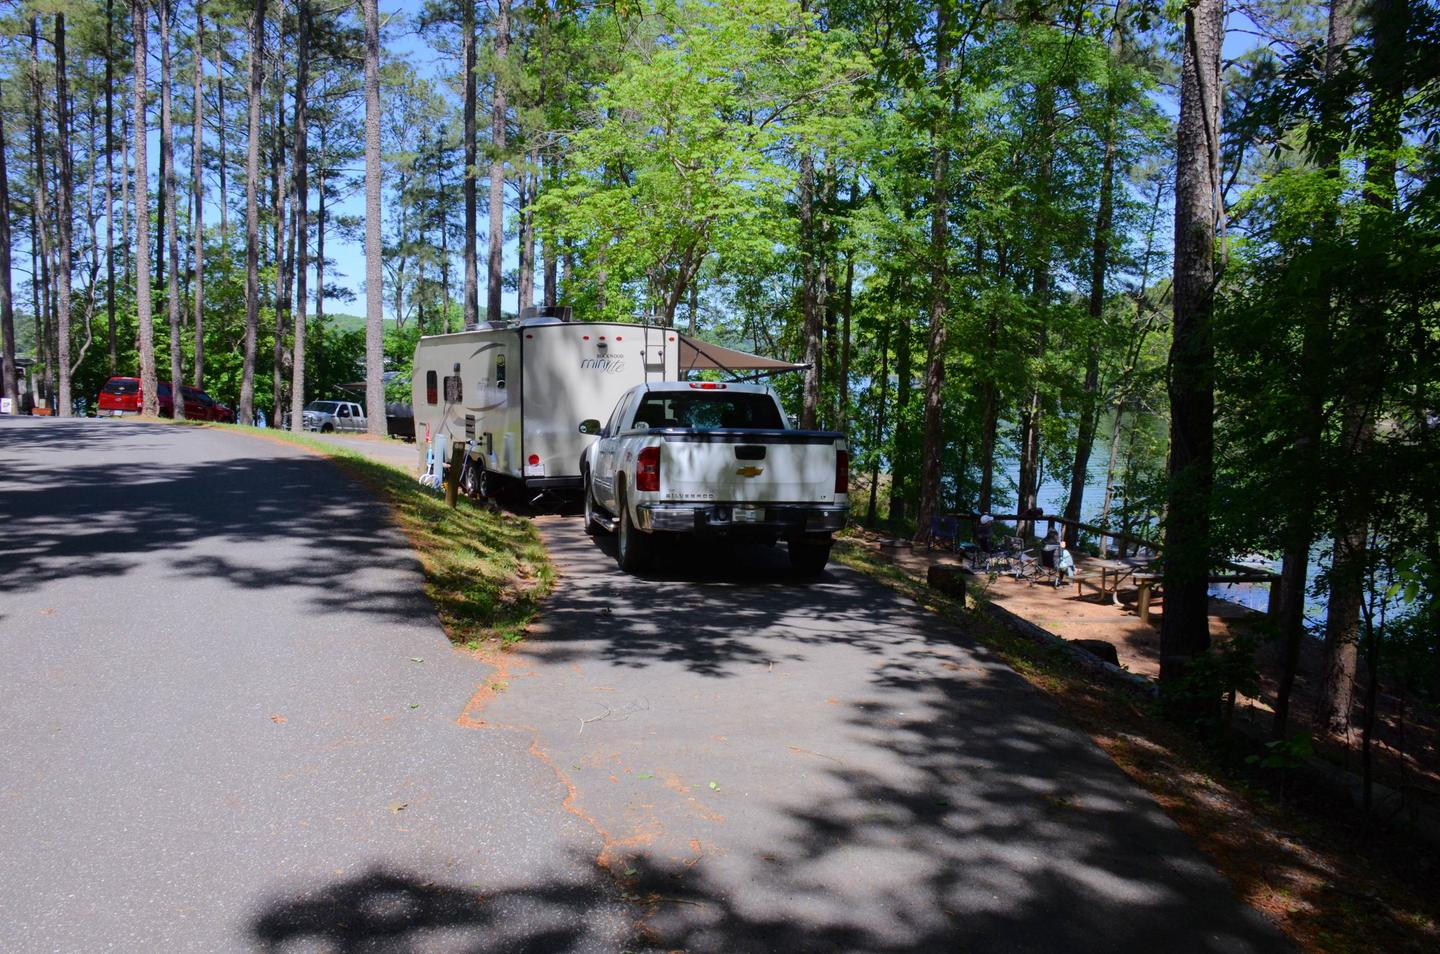 Pull-thru entrance, driveway slope, utilities-side clearance.McKinney Campground, campsite 86.